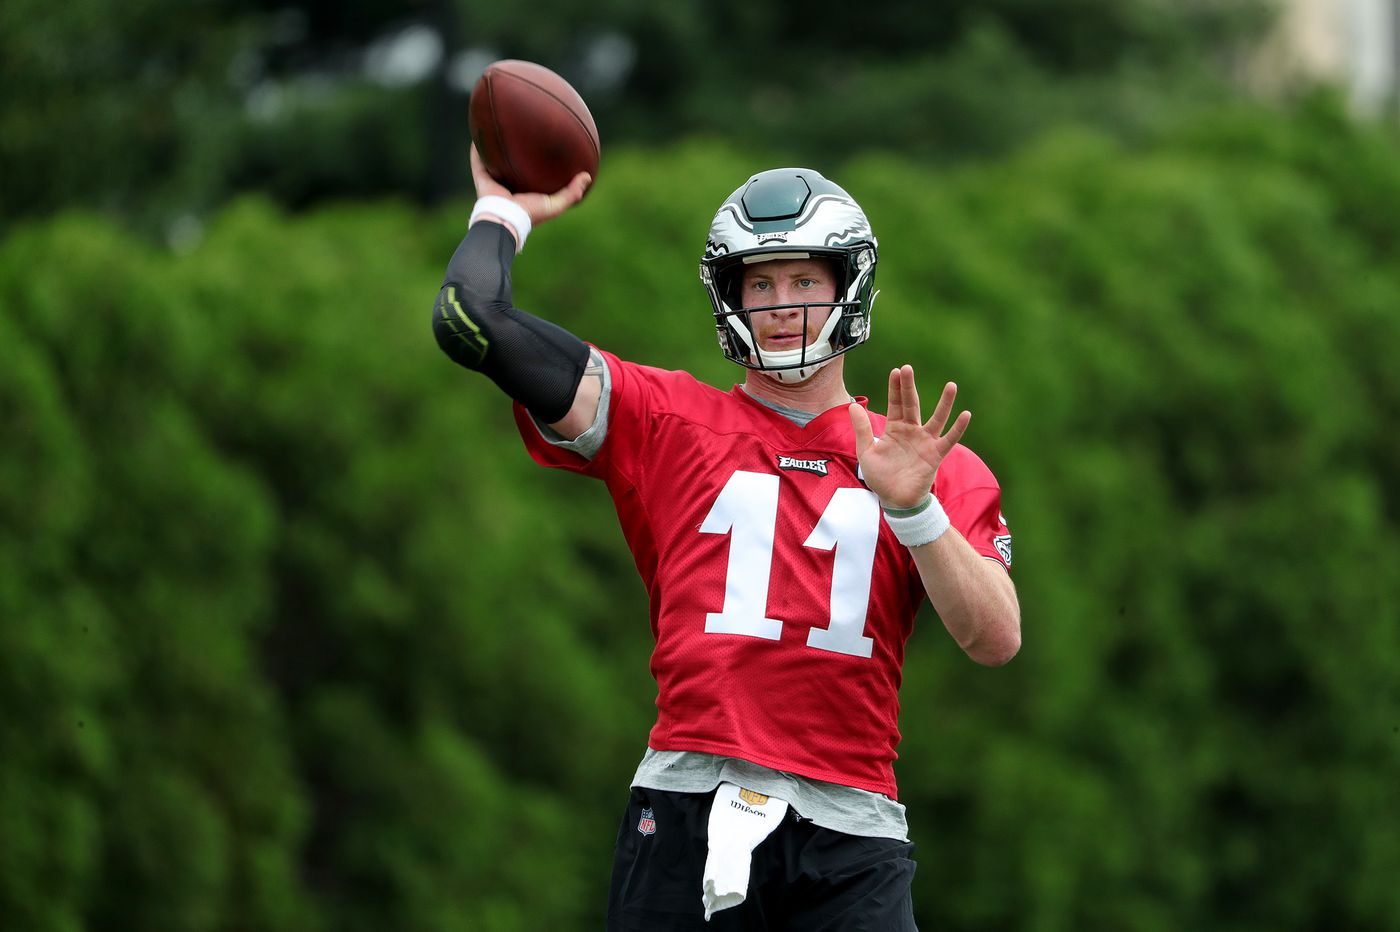 Eagles' Carson Wentz showed progress throughout the spring, 'live contact' is his next hurdle